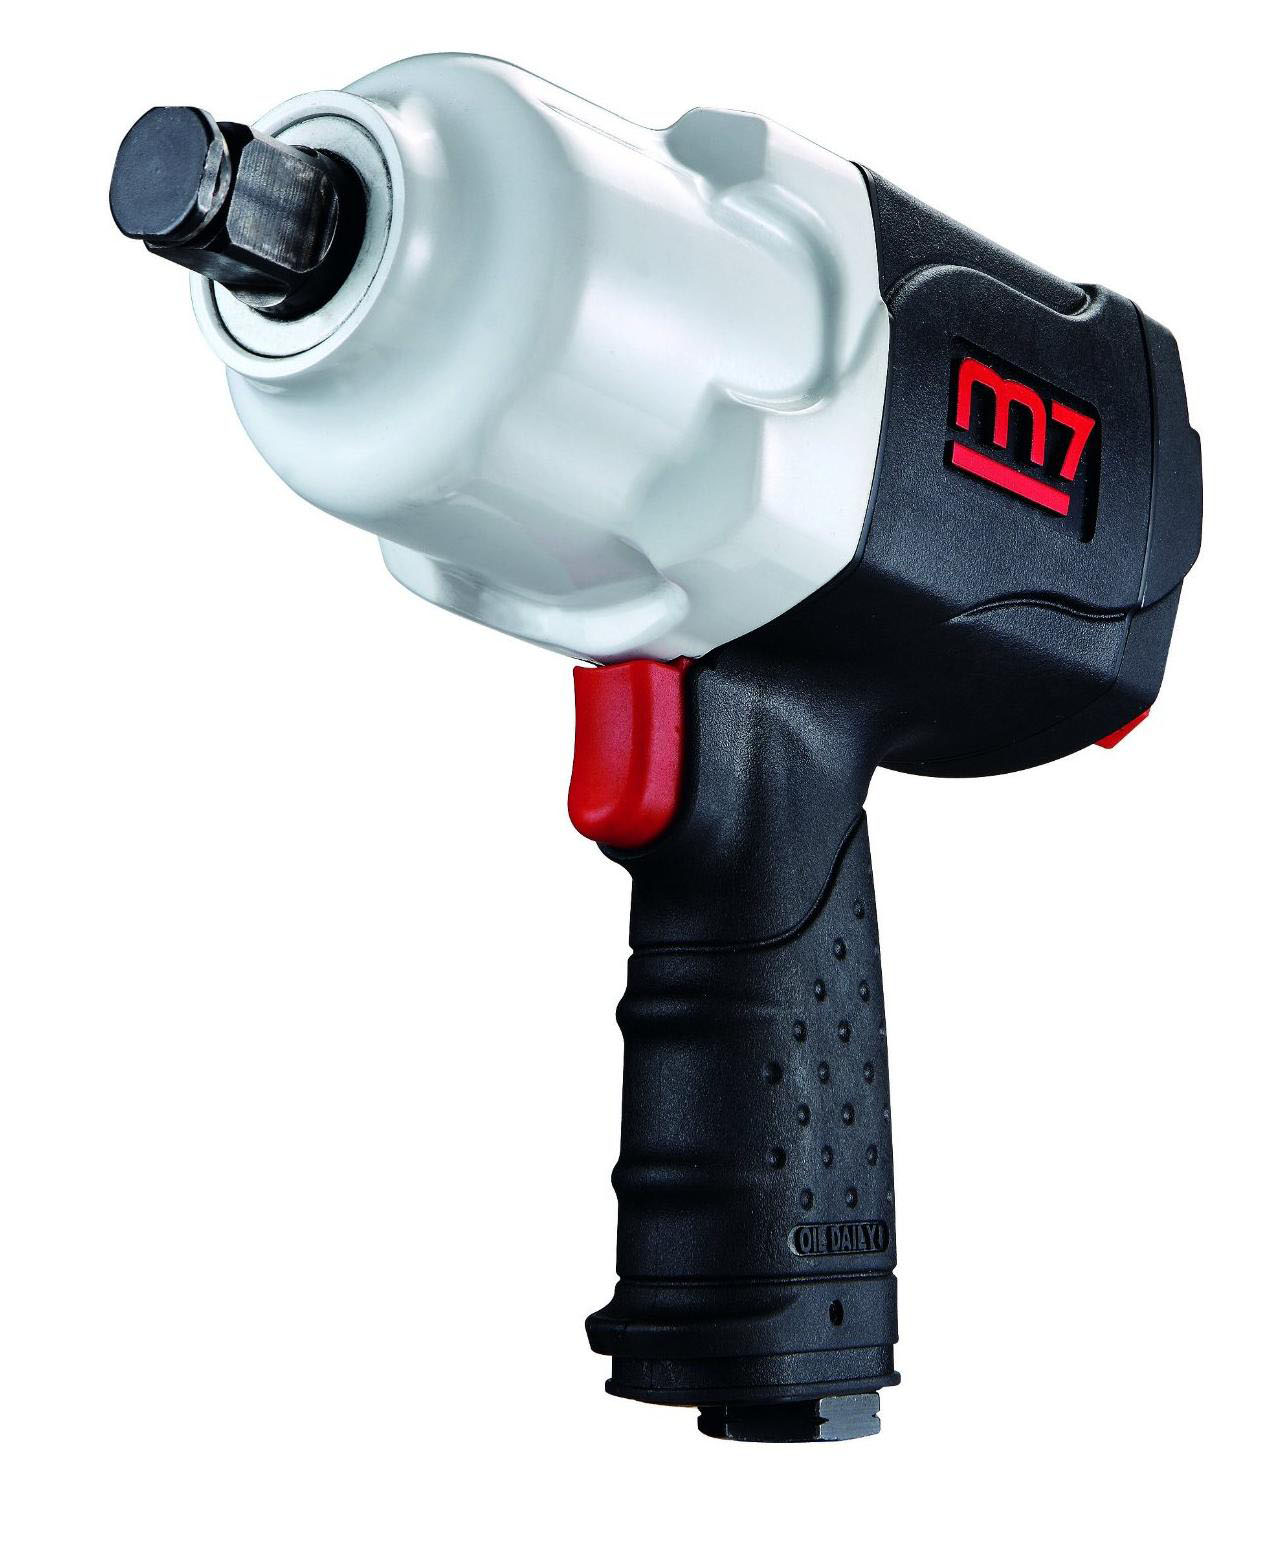 MIGHTY SEVEN NC-6216 - 3/4in Air Drive Impact Wrench; 1200 FT-LB Max Torque